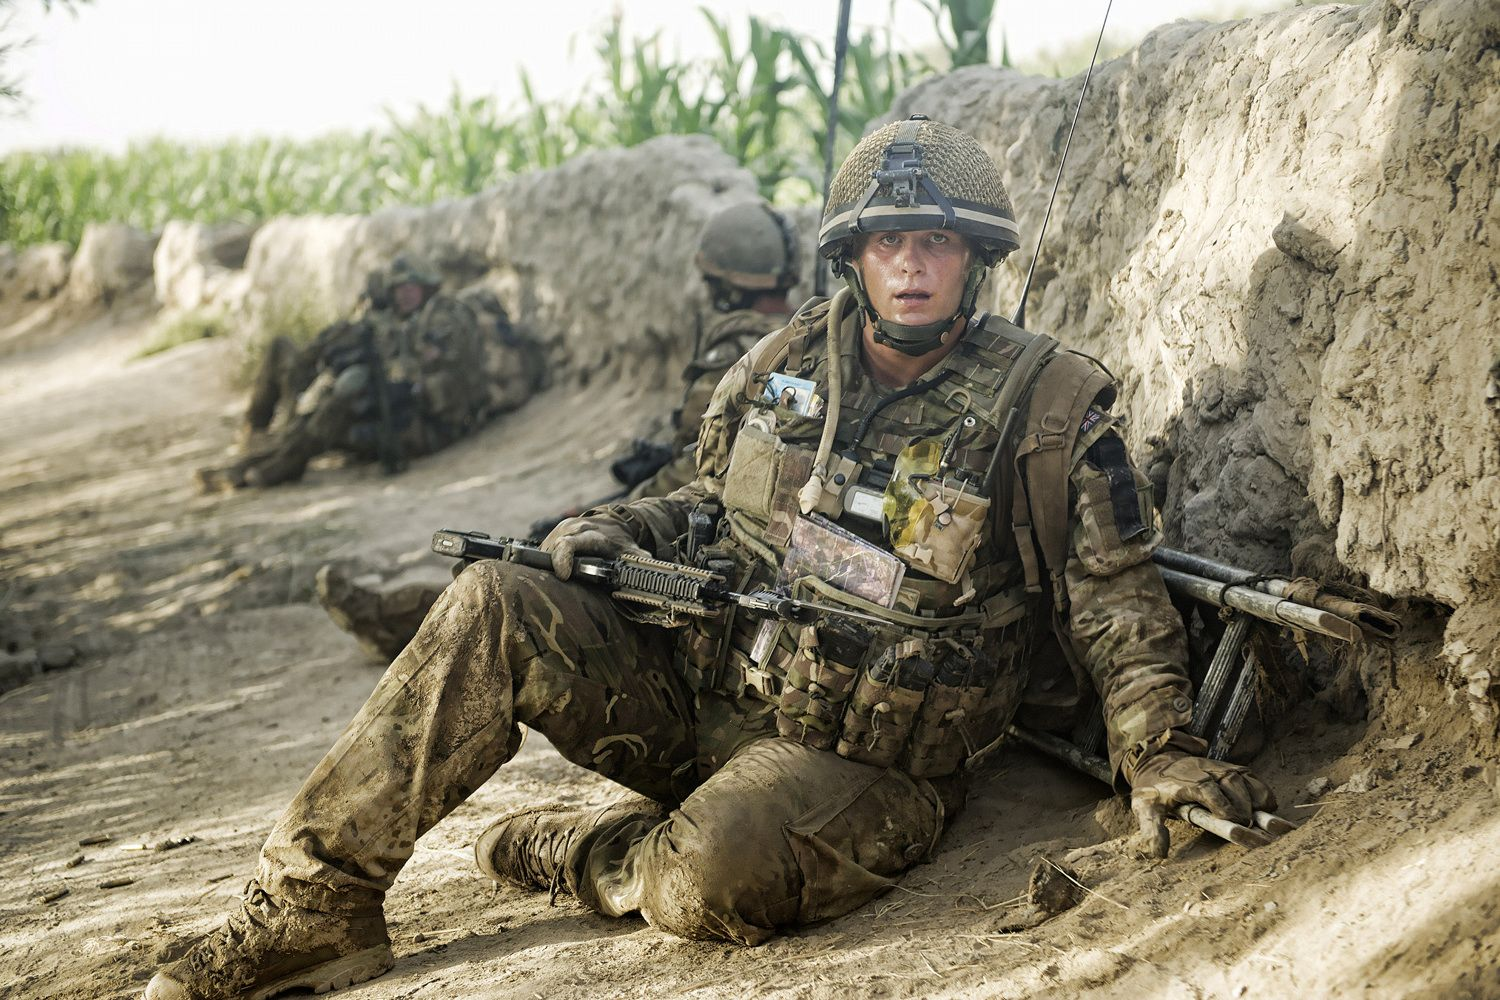 A Soldier From A Company 1 Rifles Based In Patrol Base 4 Takes